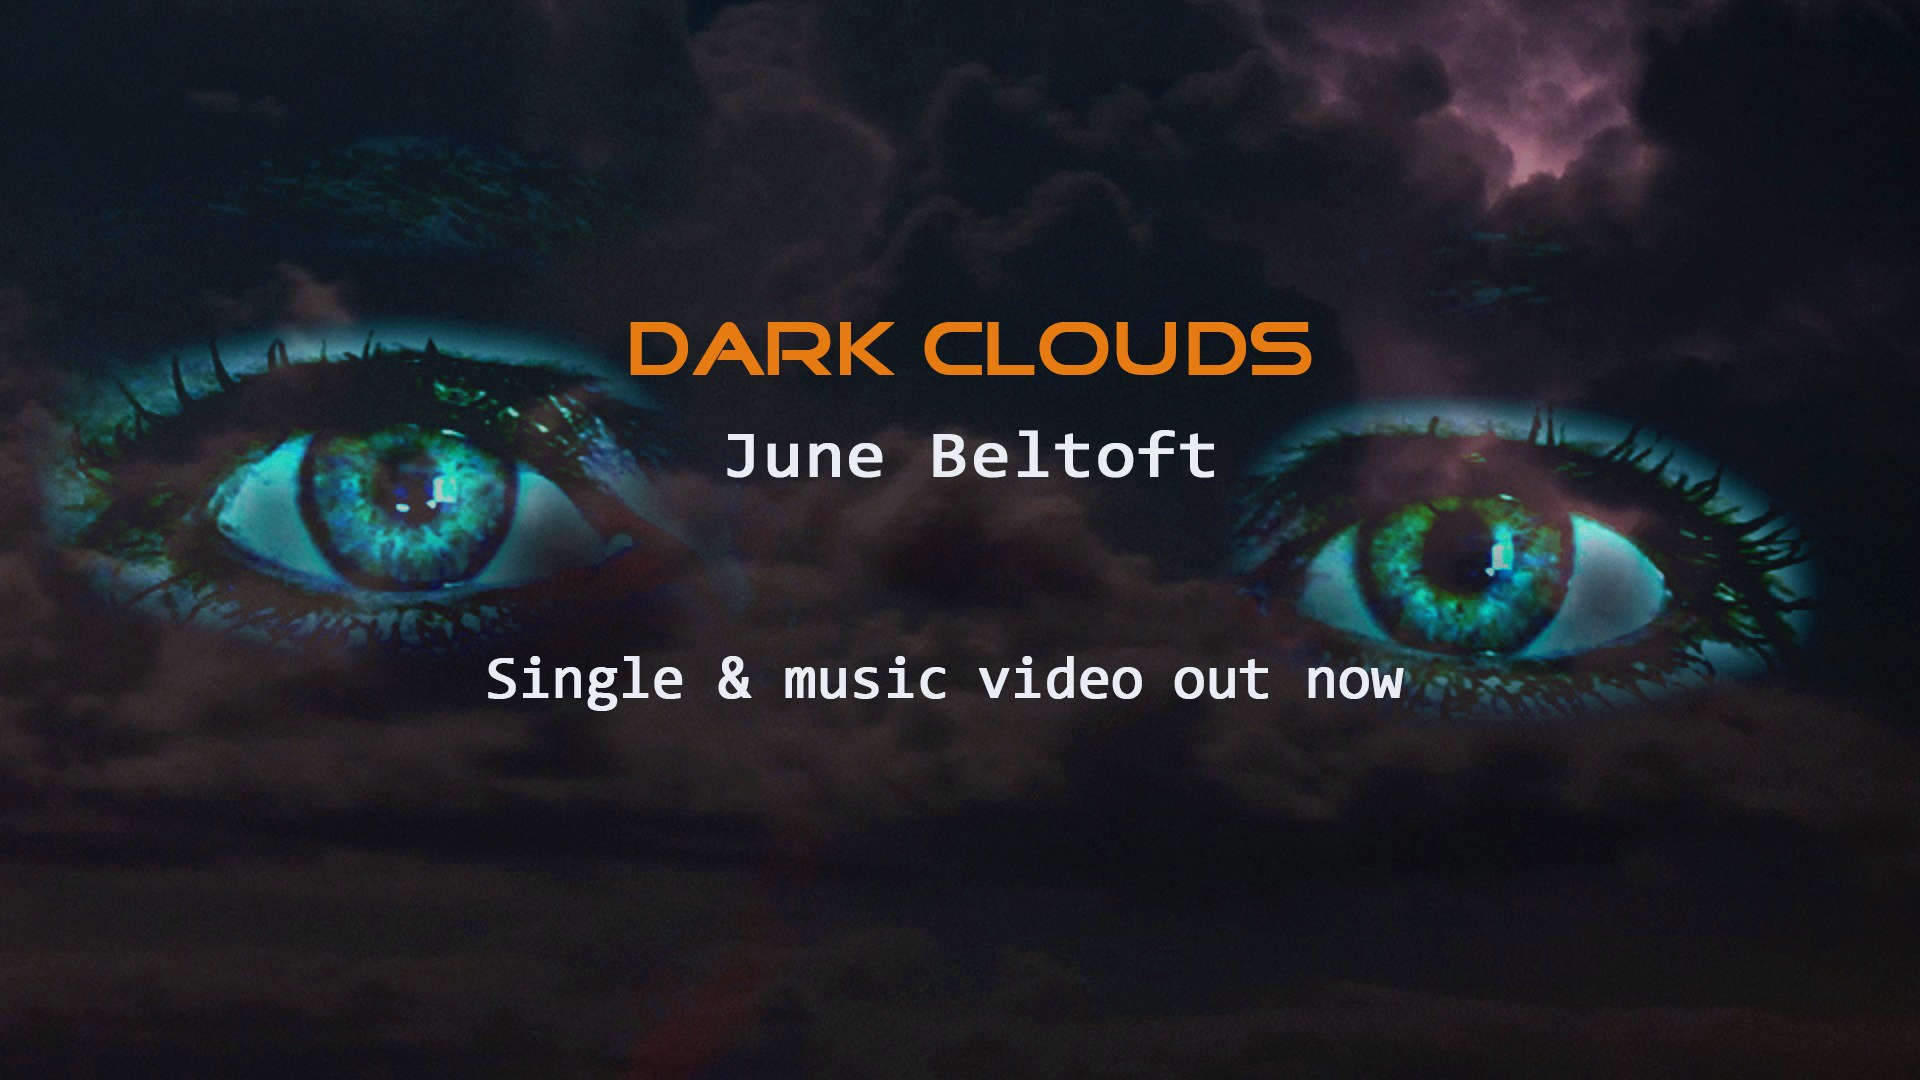 Dark Clouds musikvideo - June Beltoft